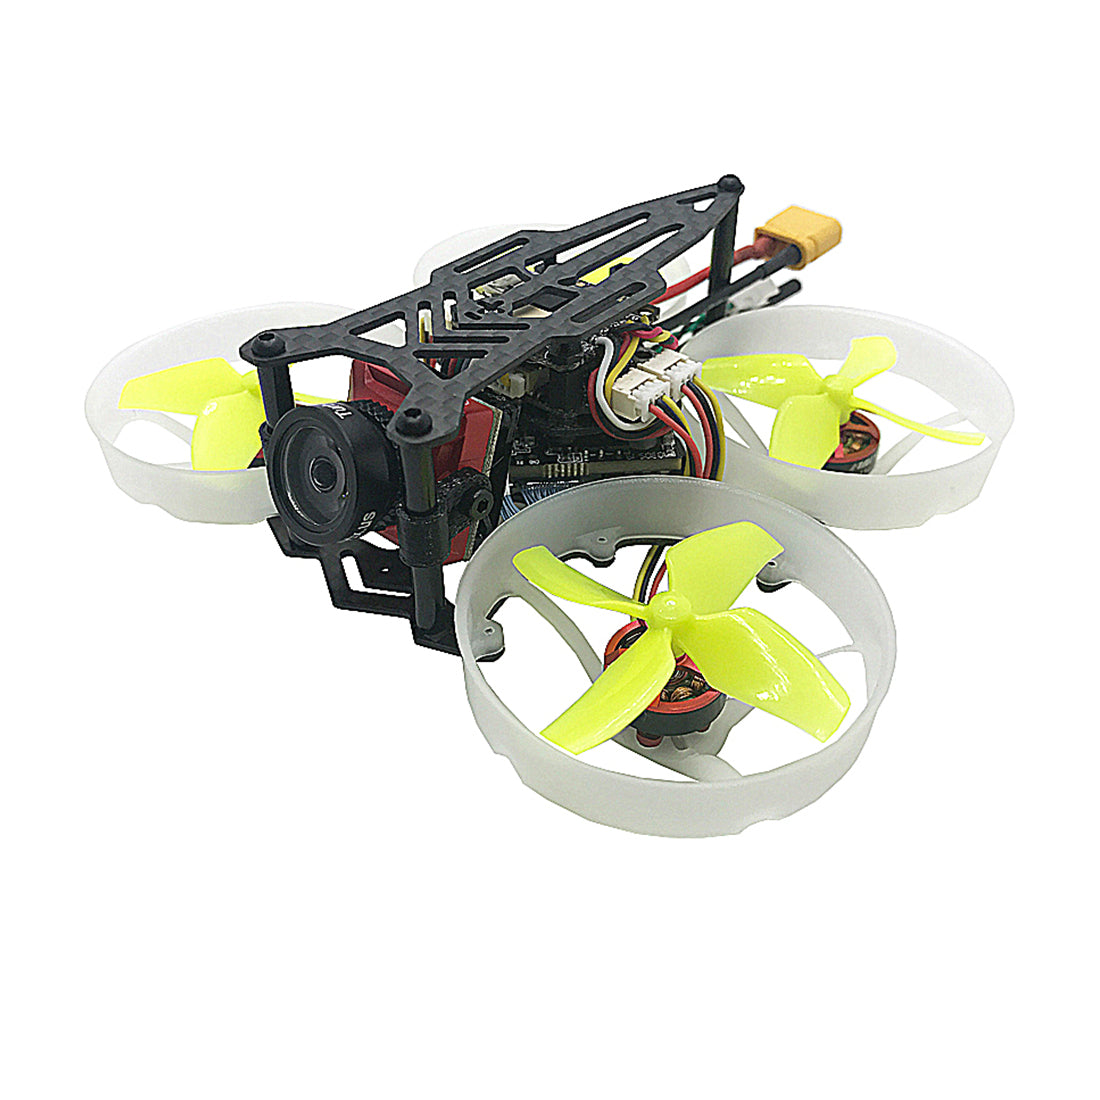 FullSpeed TinyLeader HDV2 Brushless Whoop FPV Racing Drone Quadcopter 2-3S 25-600mw VTX 1103 11000KV Motor Caddx Micro F2 Camera